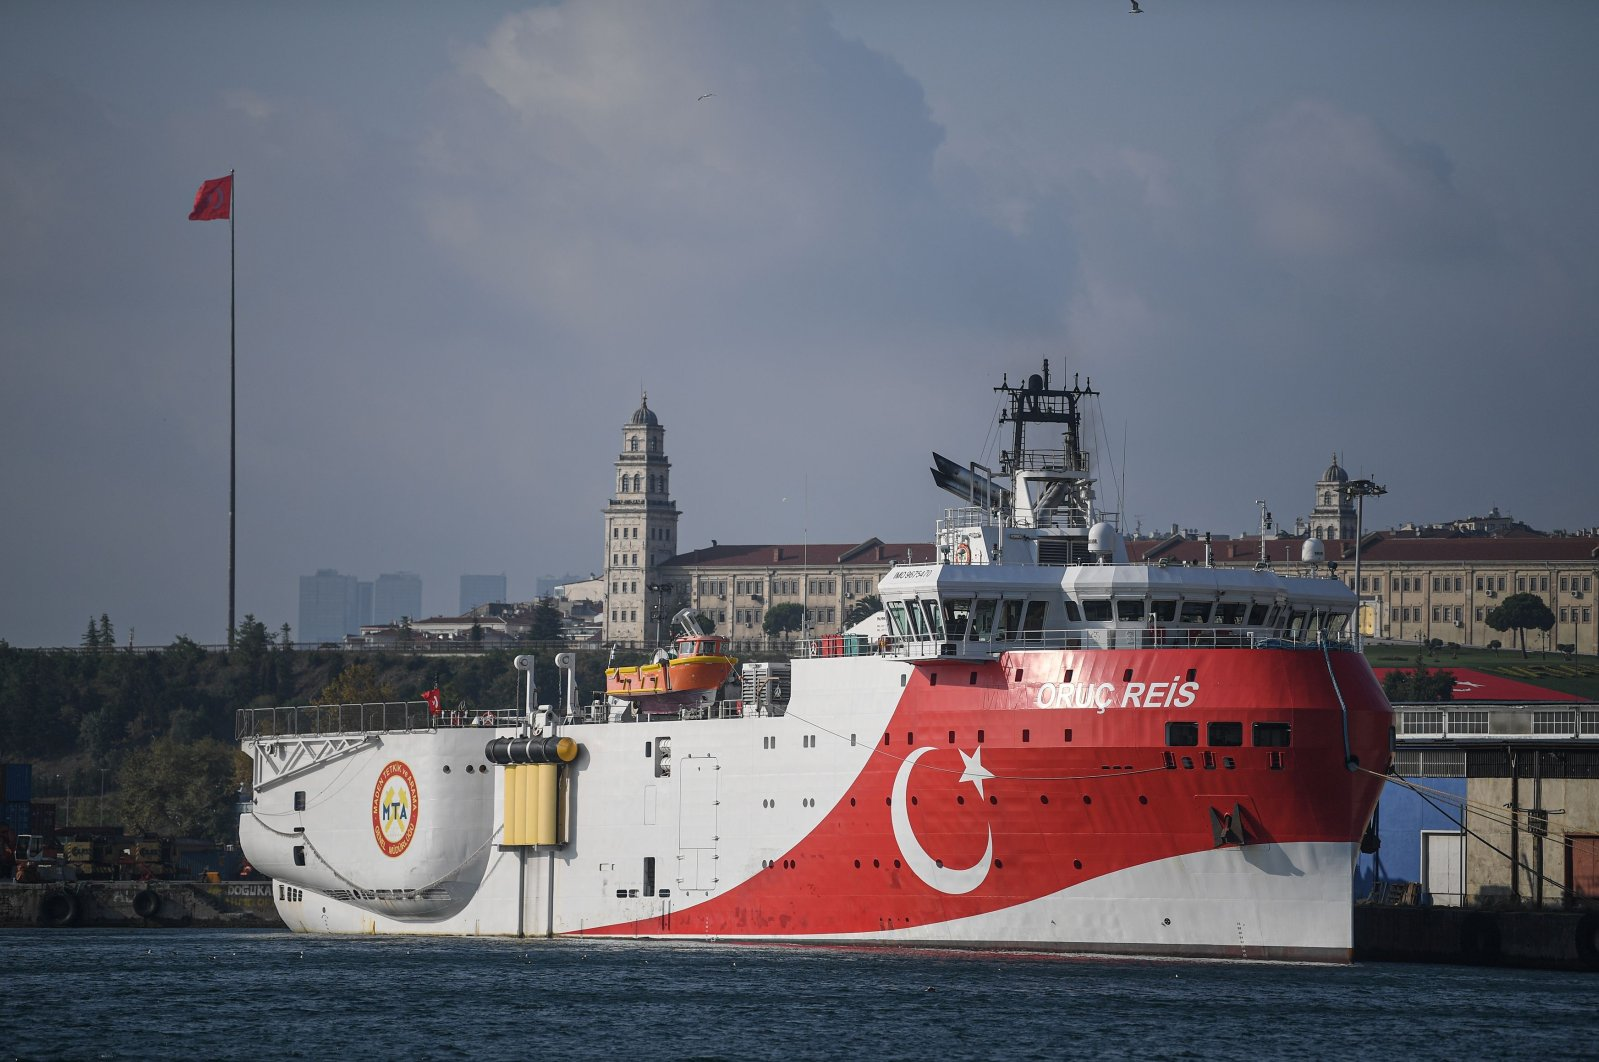 This file photo shows a view of the Oruc Reis seismic research vessel docked at Haydarpasa port, which searches for hydrocarbon, oil, natural gas and coal reserves at sea, Istanbul, Aug. 23, 2019. (AFP Photo)